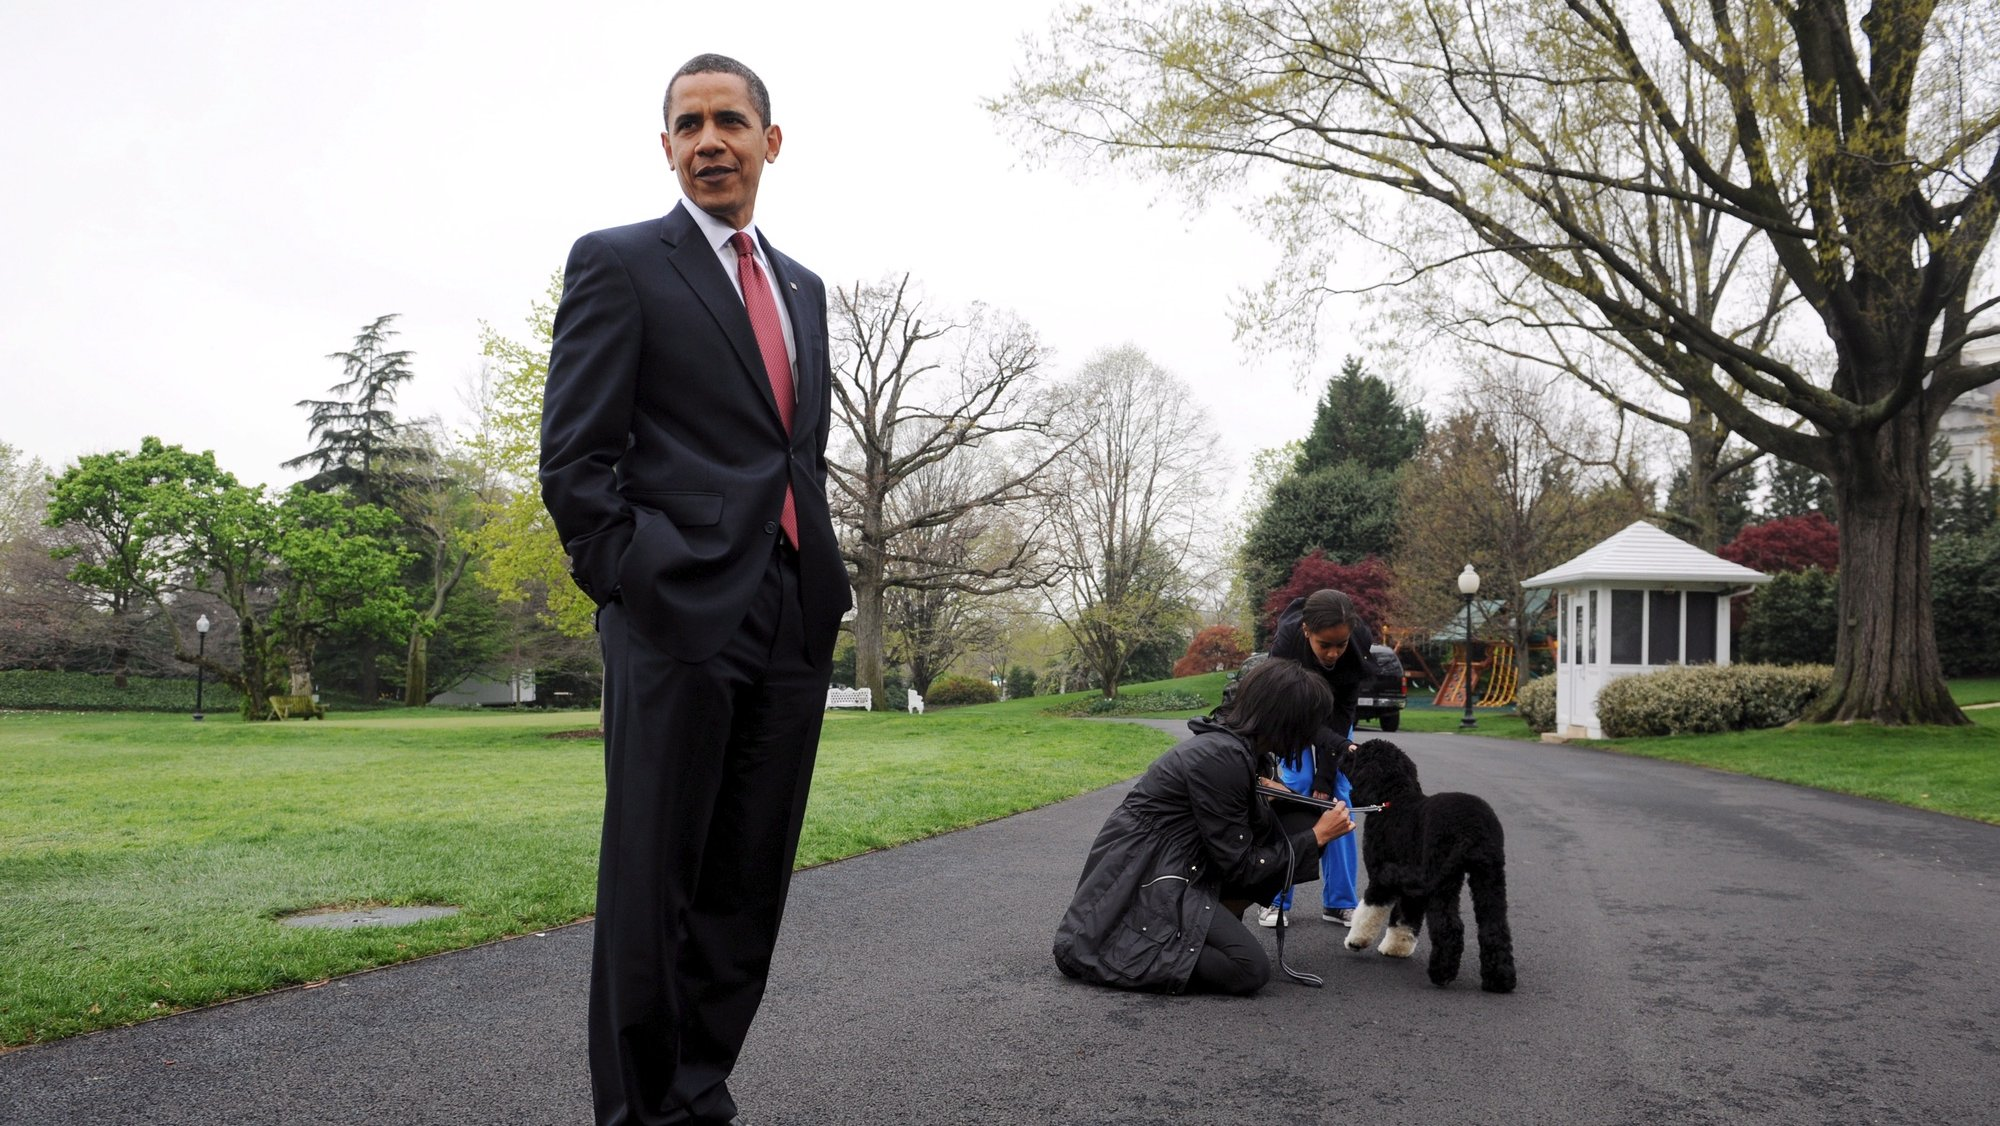 epa09186447 (FILE) - US President Barack Obama (L), speaks to members of the press while First Lady Michelle Obama (back L) and one of their daughters Malia (back R) play with the new White House dog Bo, a six-month-old black-and-white Portuguese water dog, at the South Lawn of the White House in Washington, DC, USA, 14 April 2009 (Reissued 08 May 2021). Former US President Barack Obama and First Lady Michelle Obama announced on 08 May that their dog Bo has died of cancer.  EPA/MICHAEL REYNOLDS